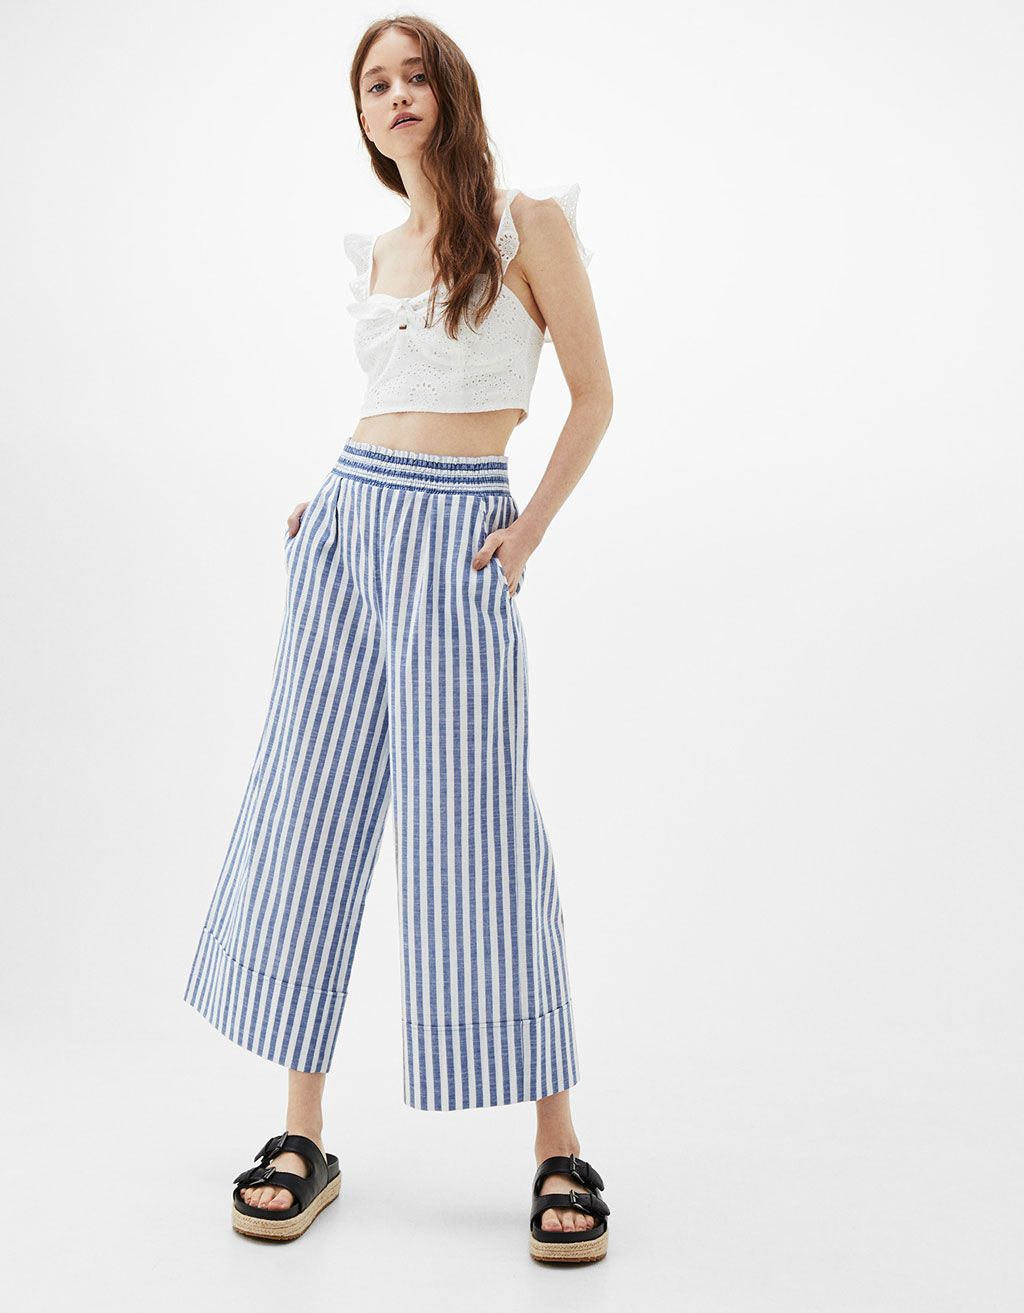 Jupe-culotte rayures taille élastique - Pantalons - Bershka France